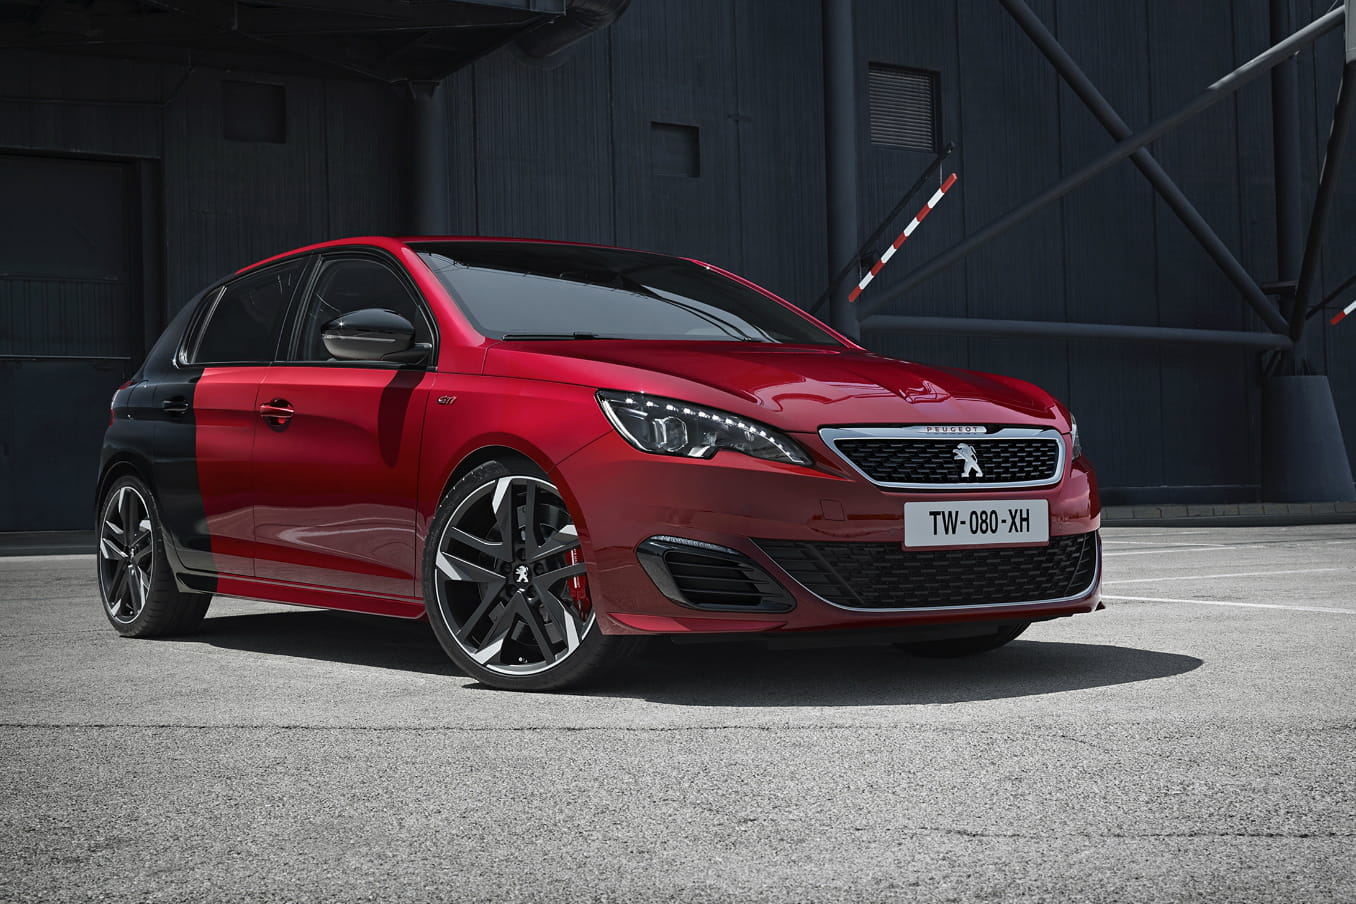 peugeot 308 gti la nouvelle lionne de 270 chevaux en images. Black Bedroom Furniture Sets. Home Design Ideas